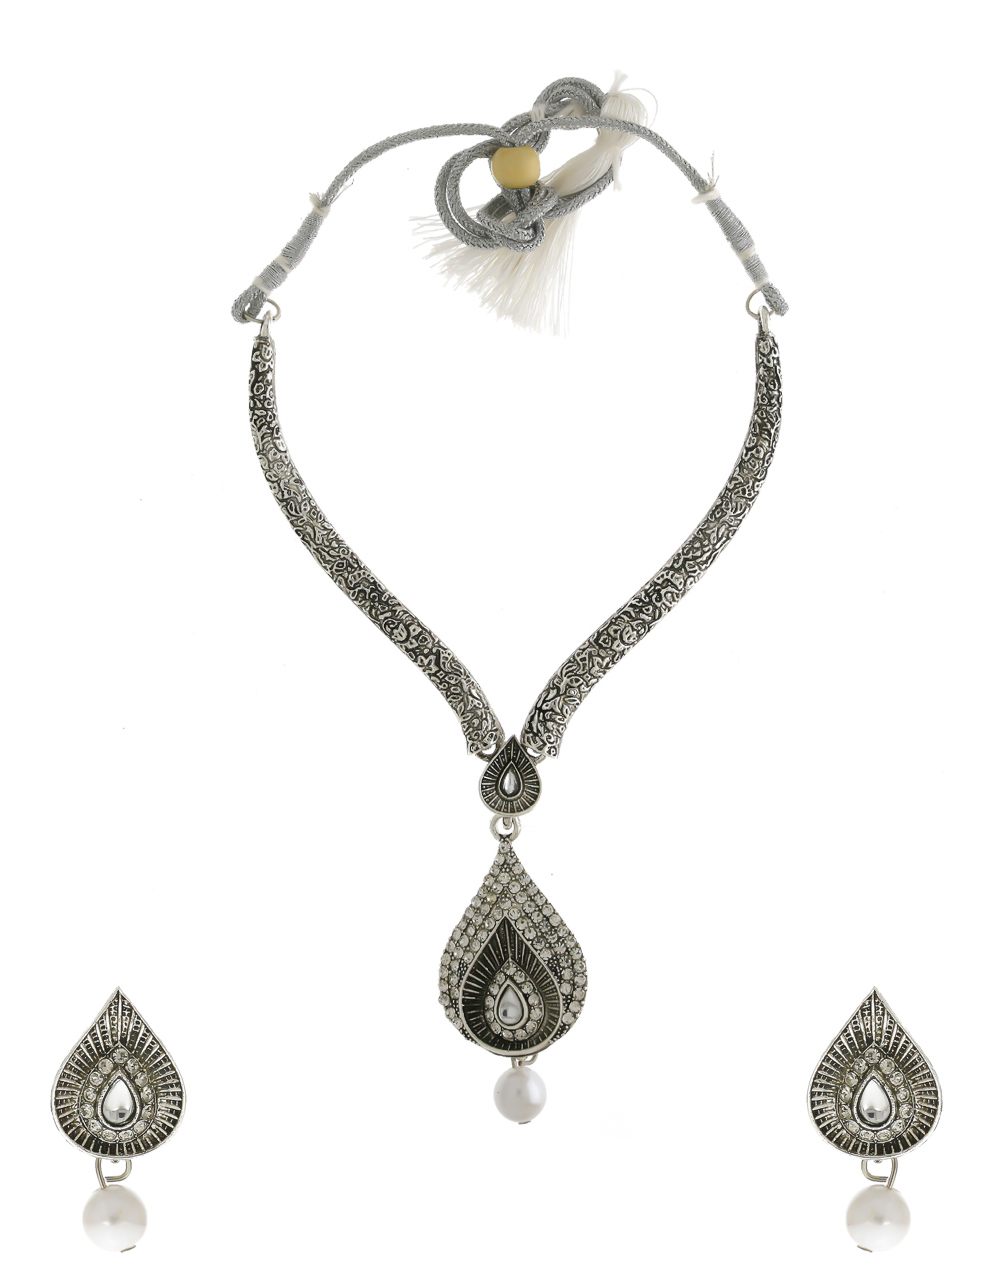 Silver Oxidised Finish Studded With Stones Necklace